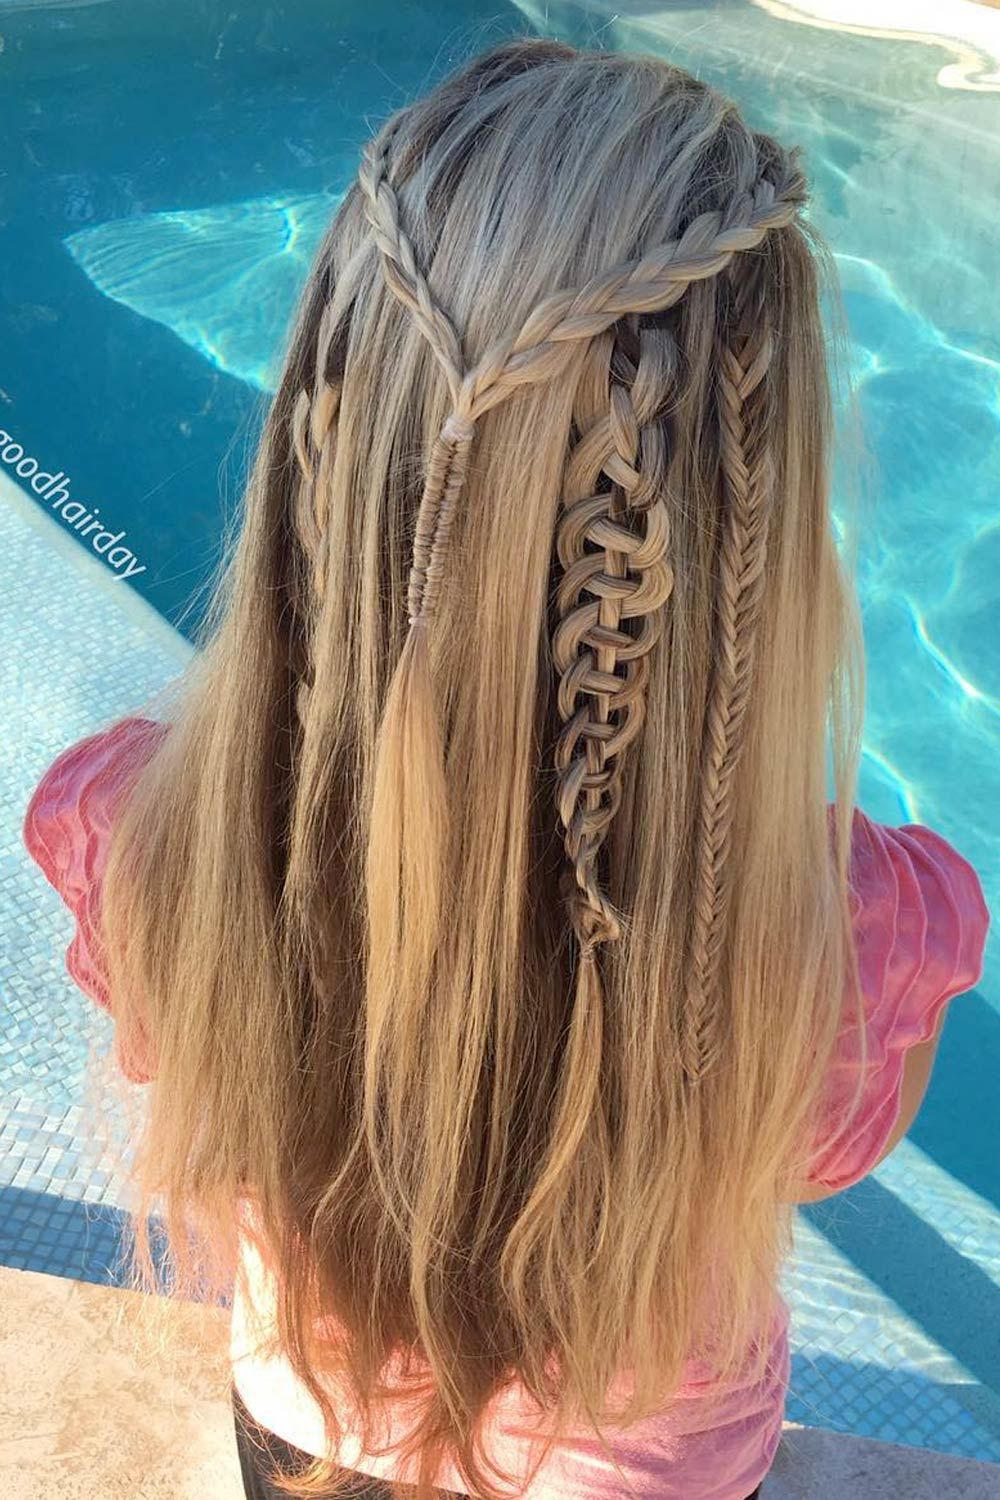 Long Hair Style With Snake Braids Accents